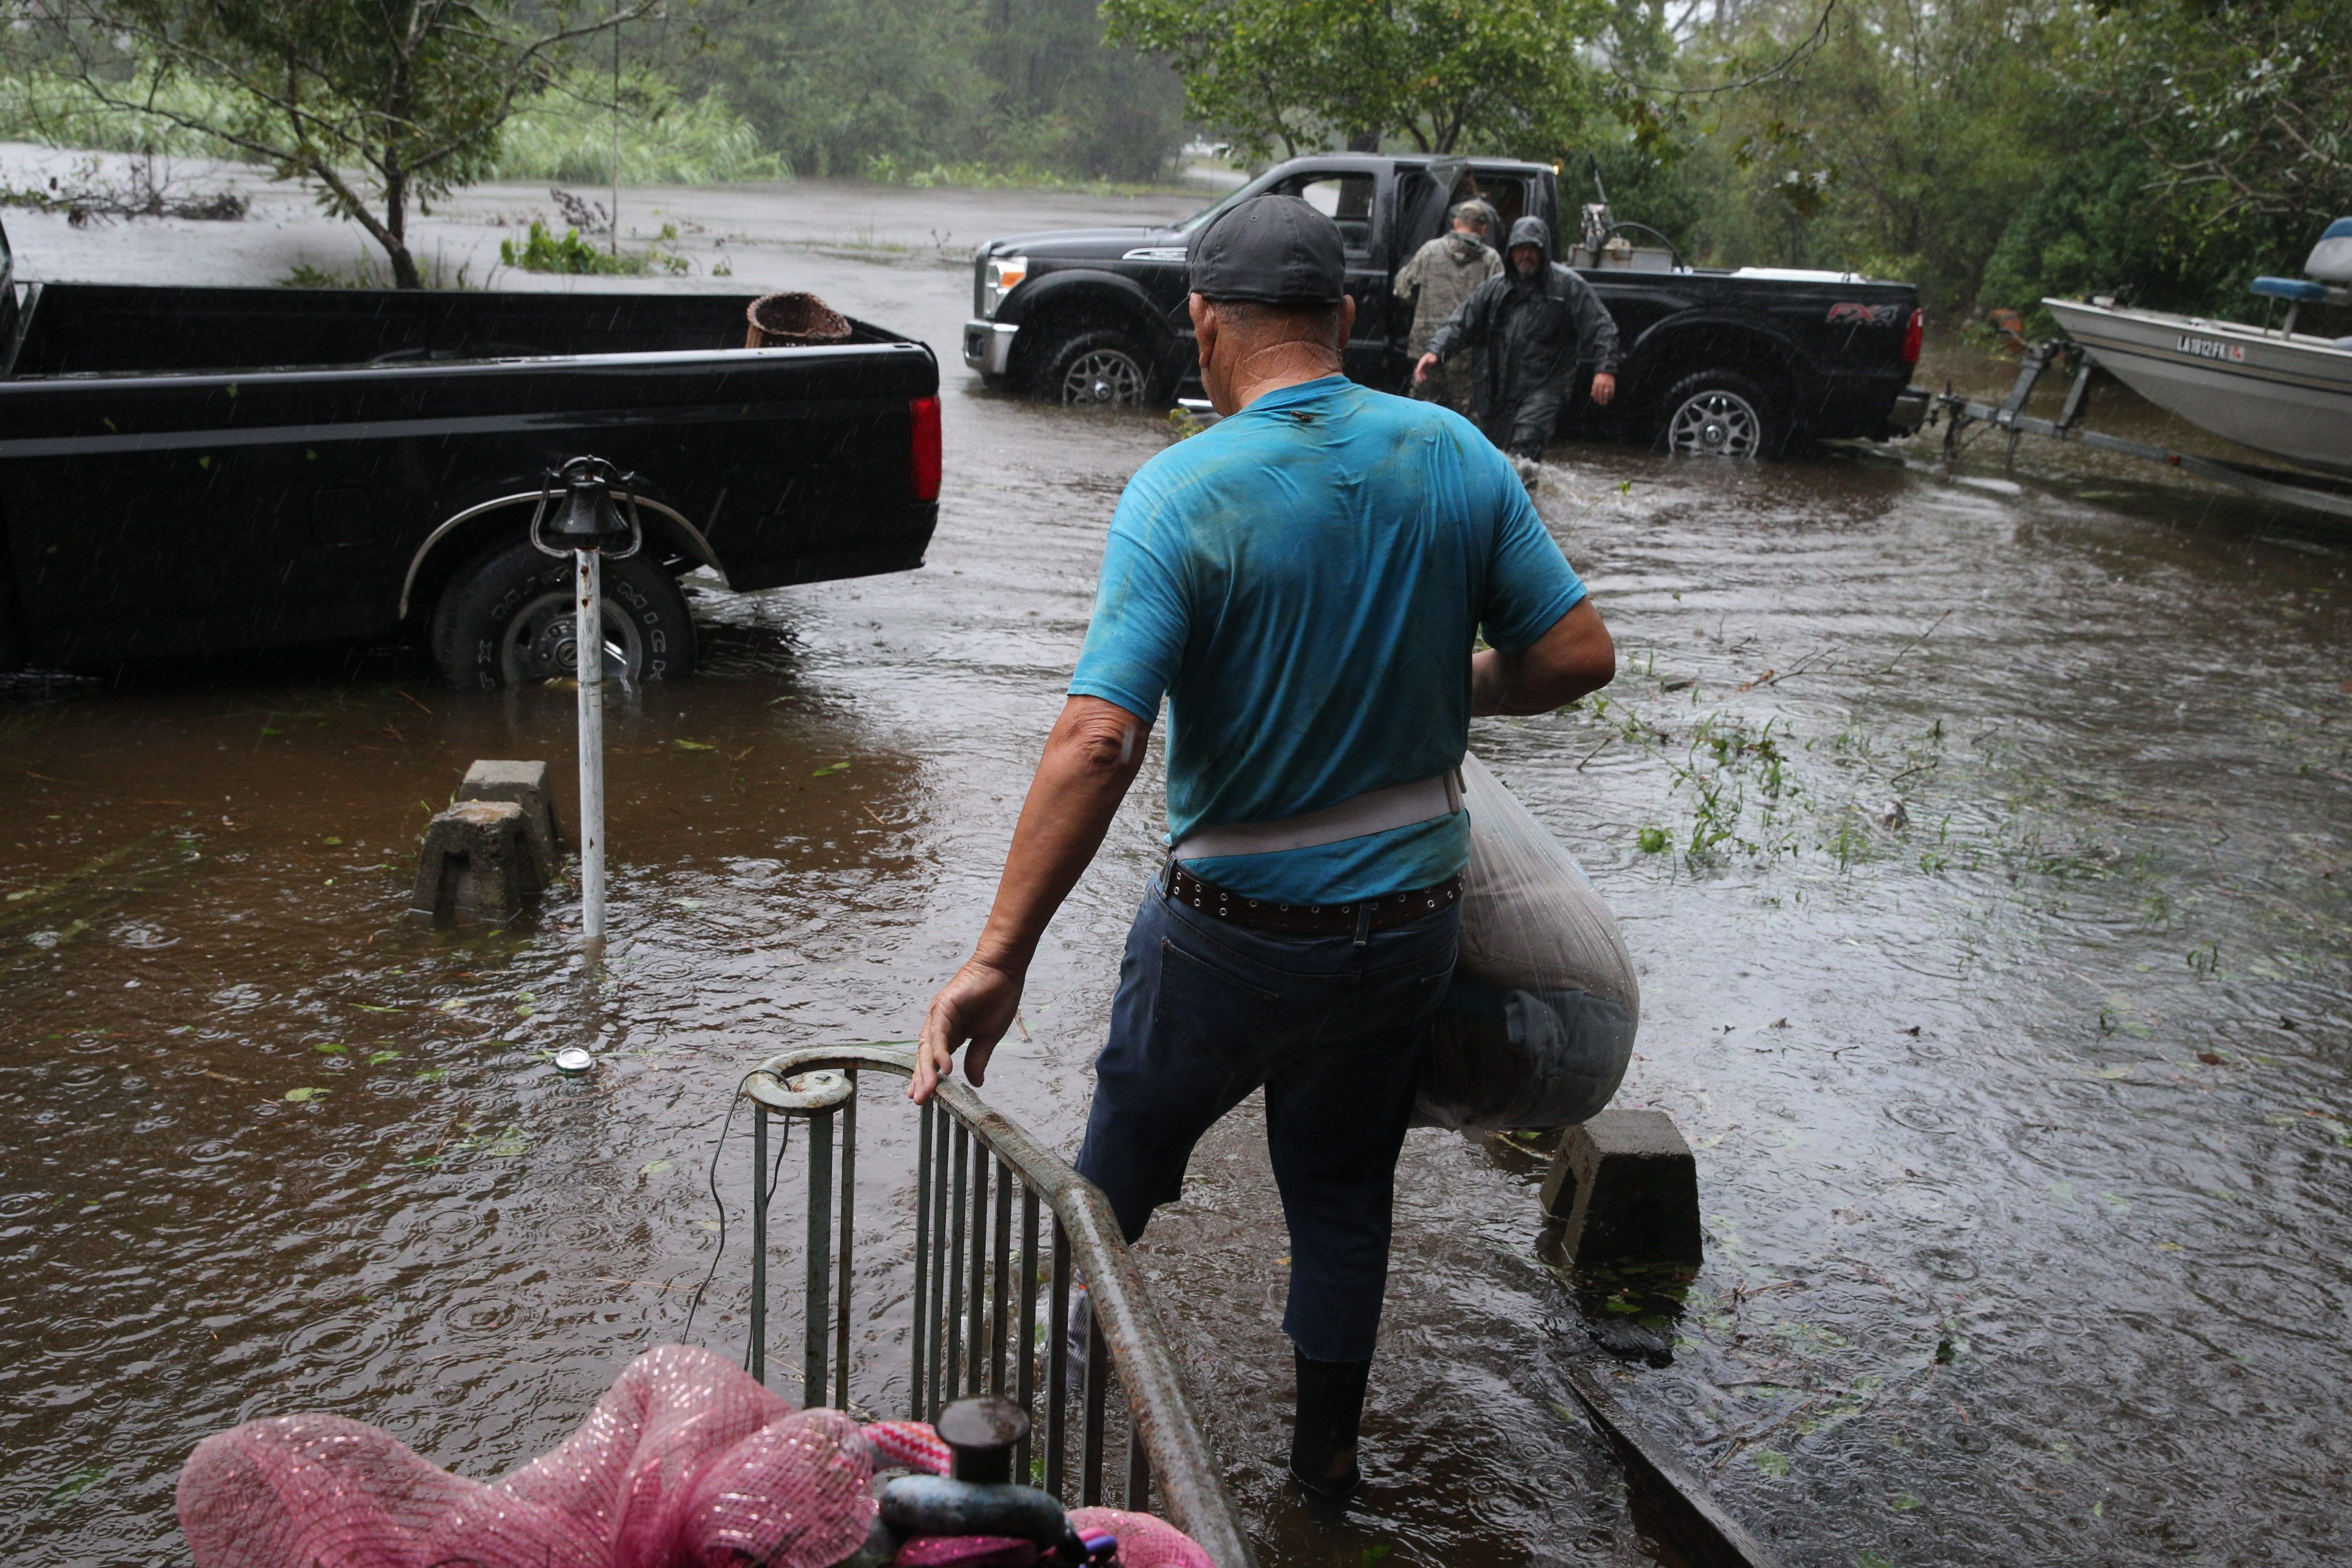 Louisiana Cajun Navy is in Place to Help Ahead of Tropical Storm Barry